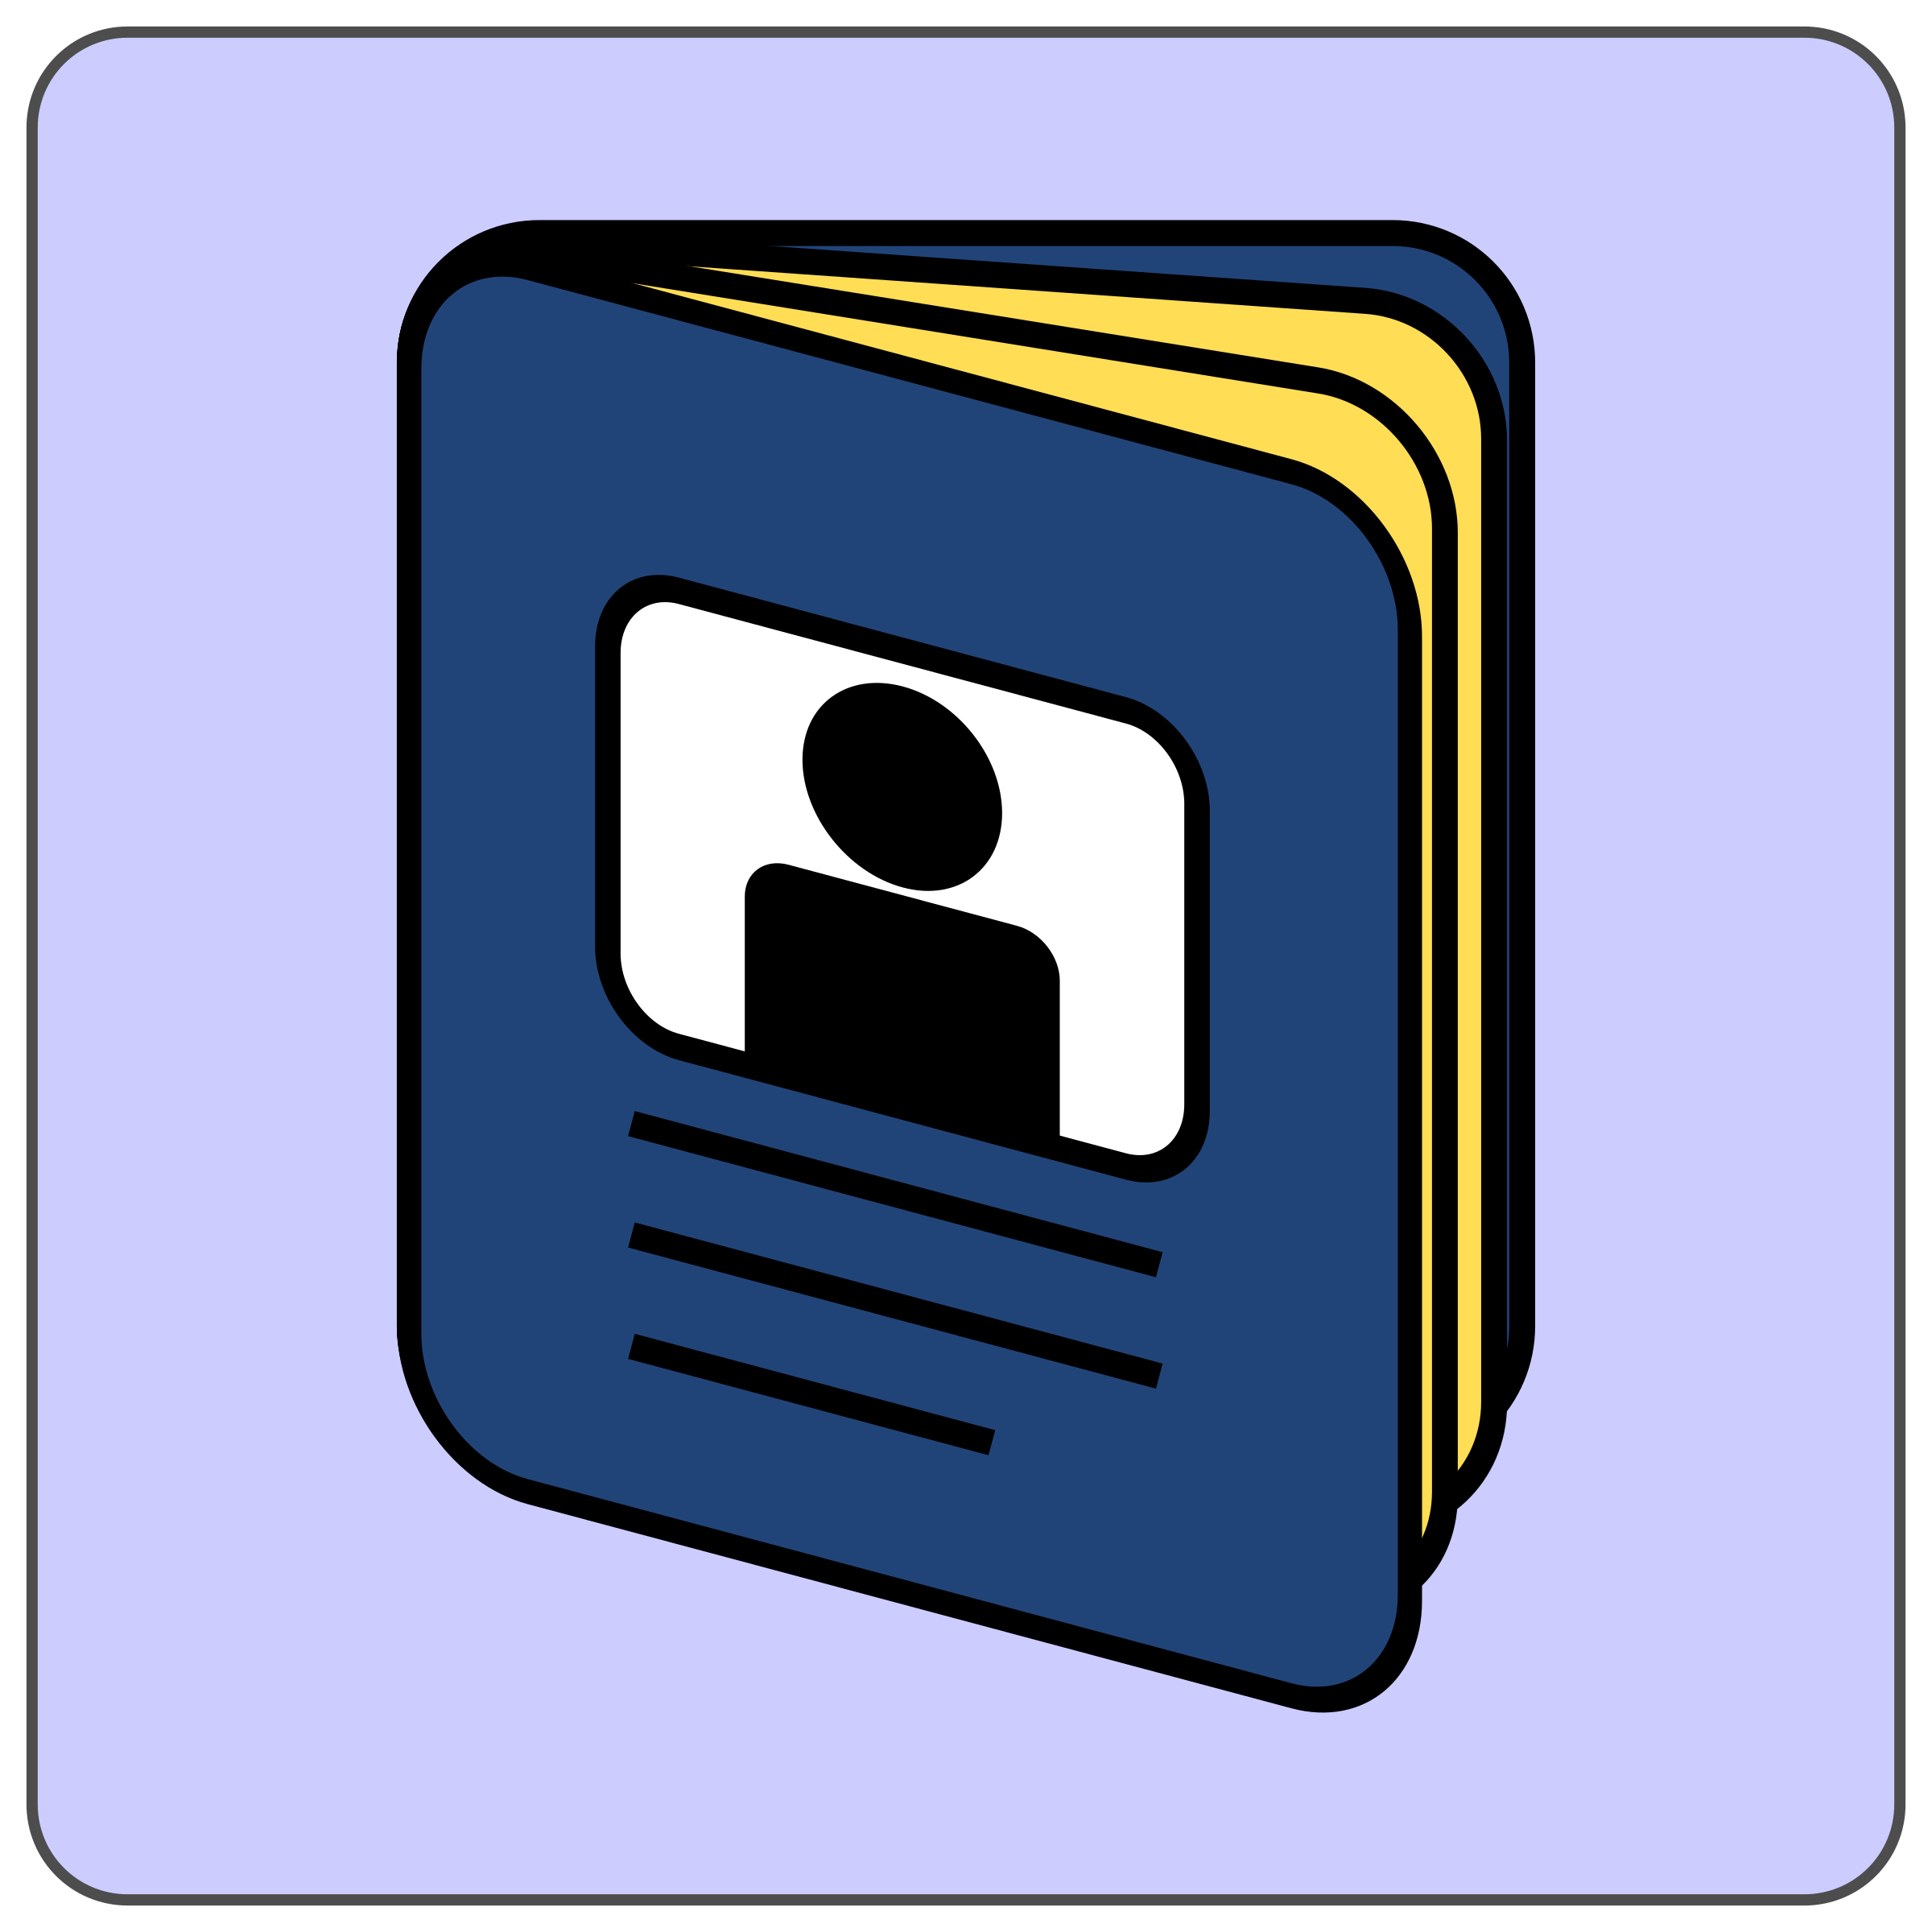 Passport icon by CoD_fsfe